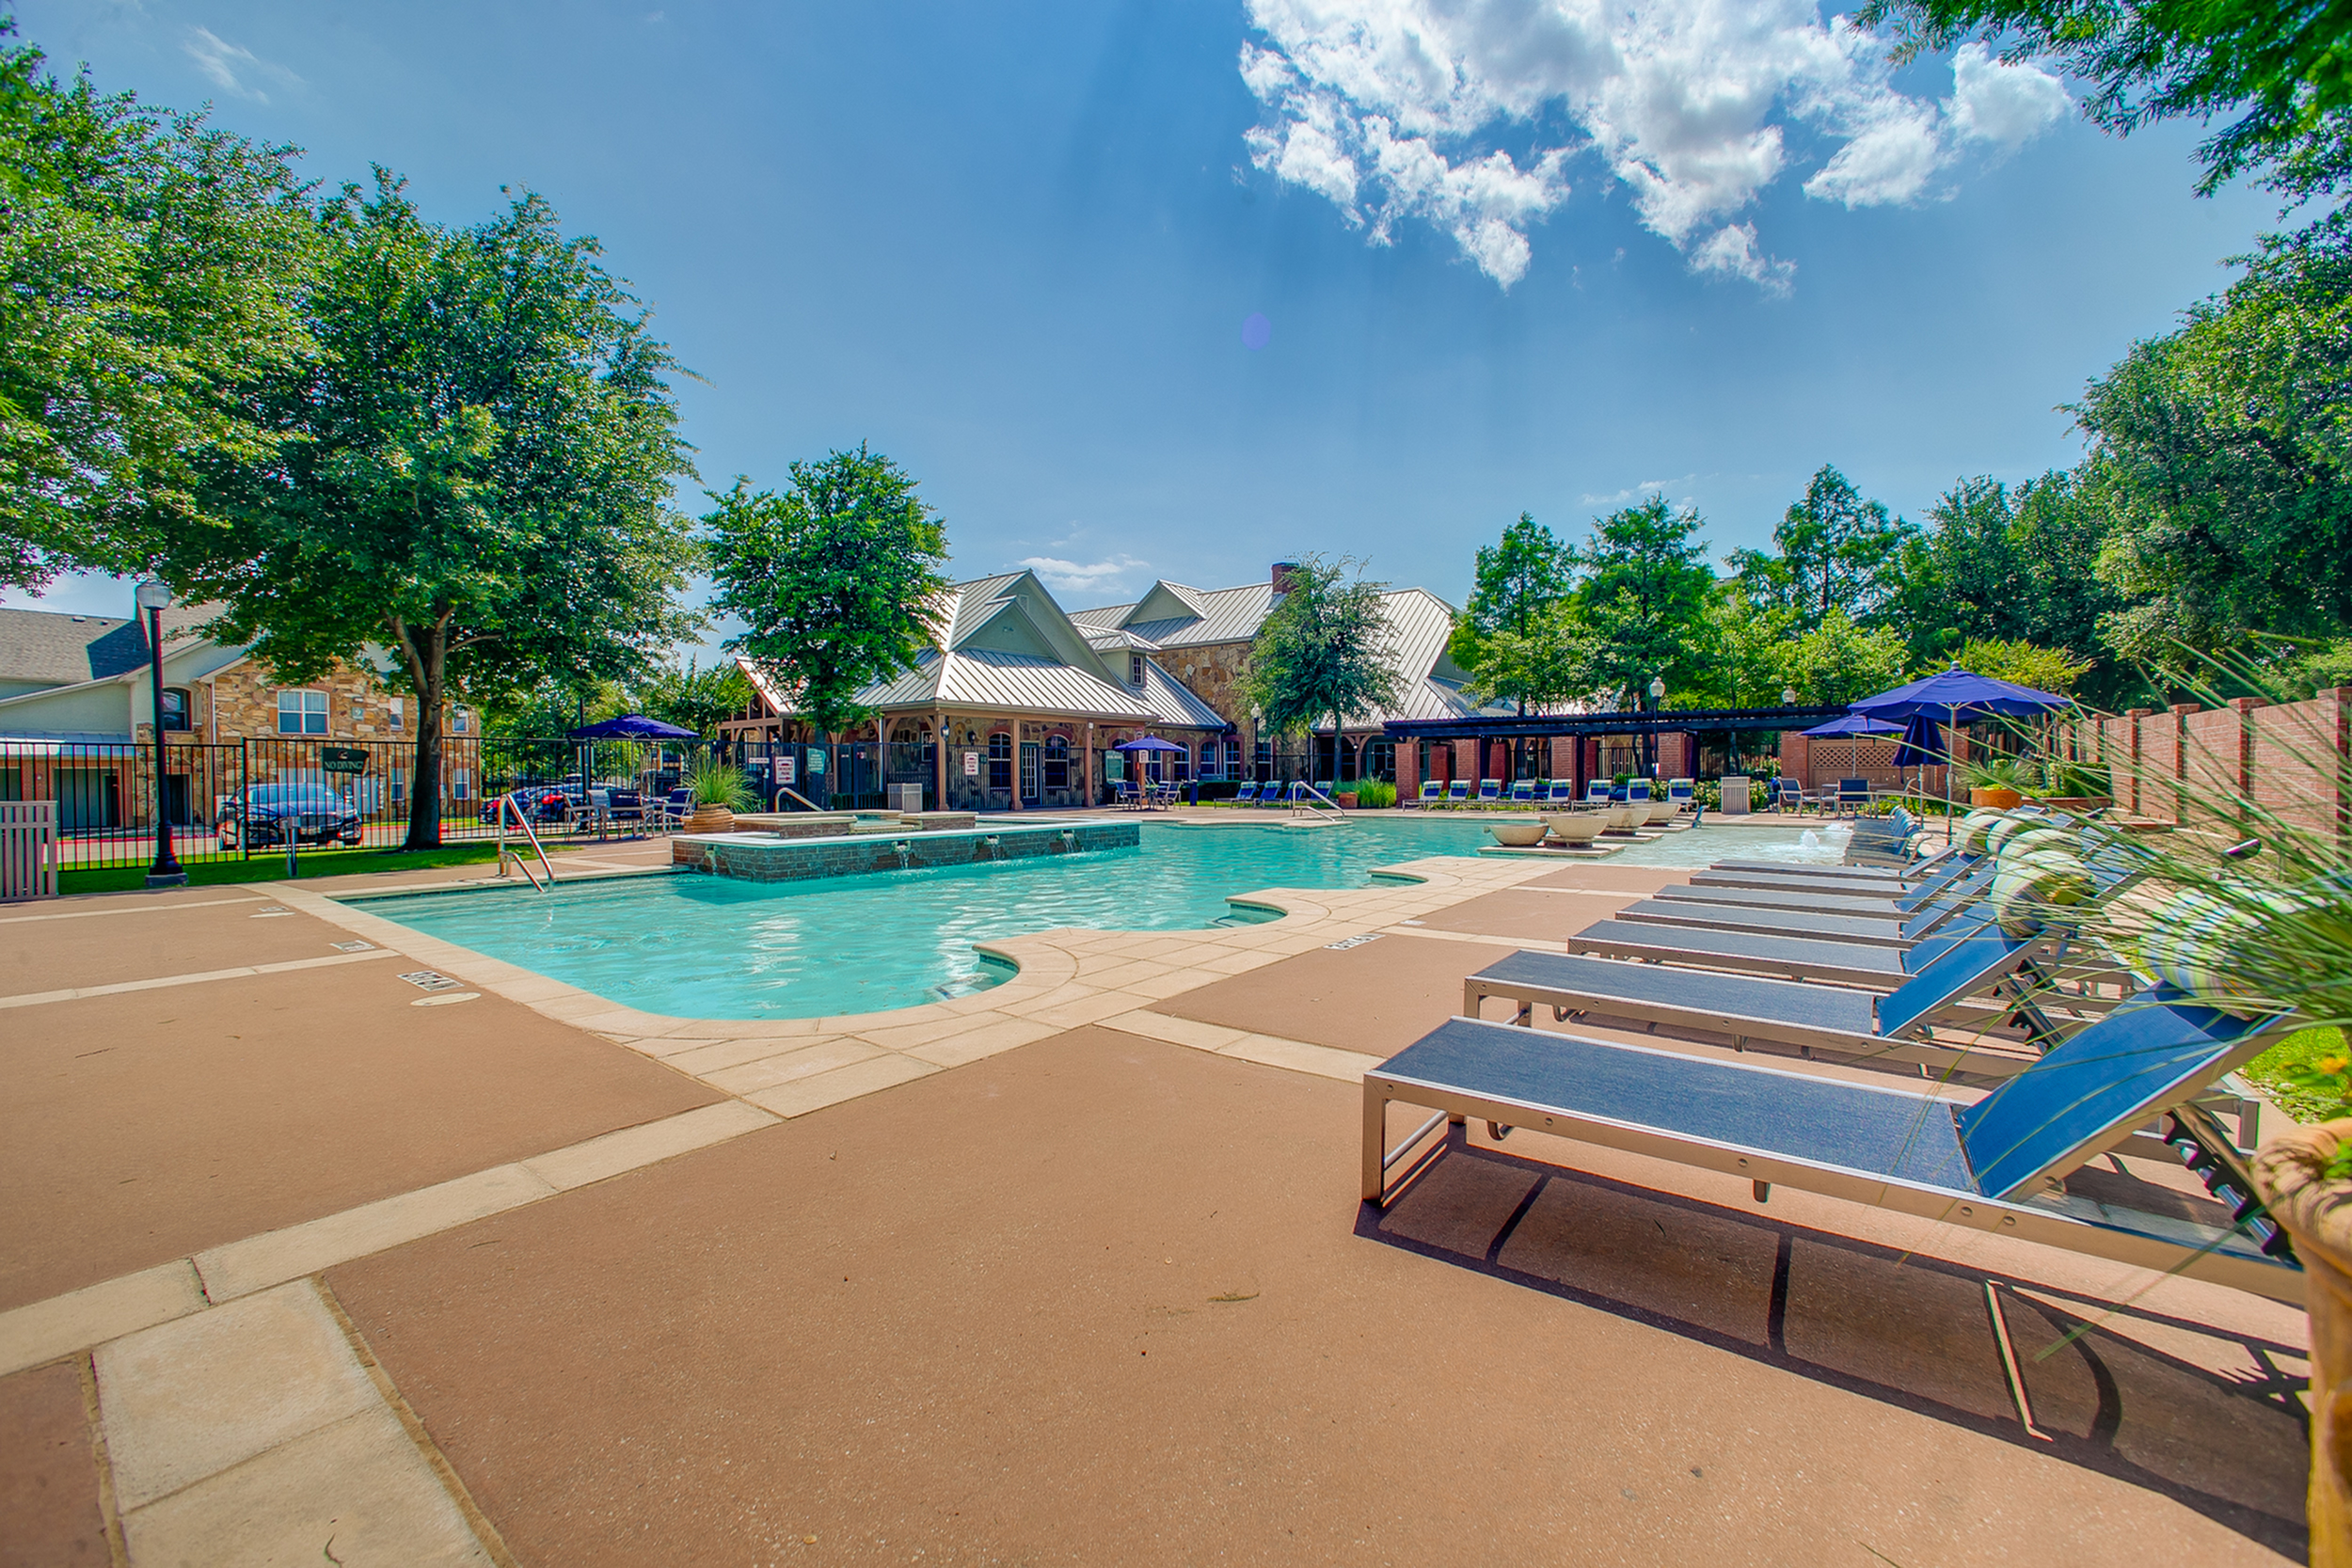 Image of Resort-Inspired Pool with Sundeck and Cabanas for Bluffs at Vista Ridge